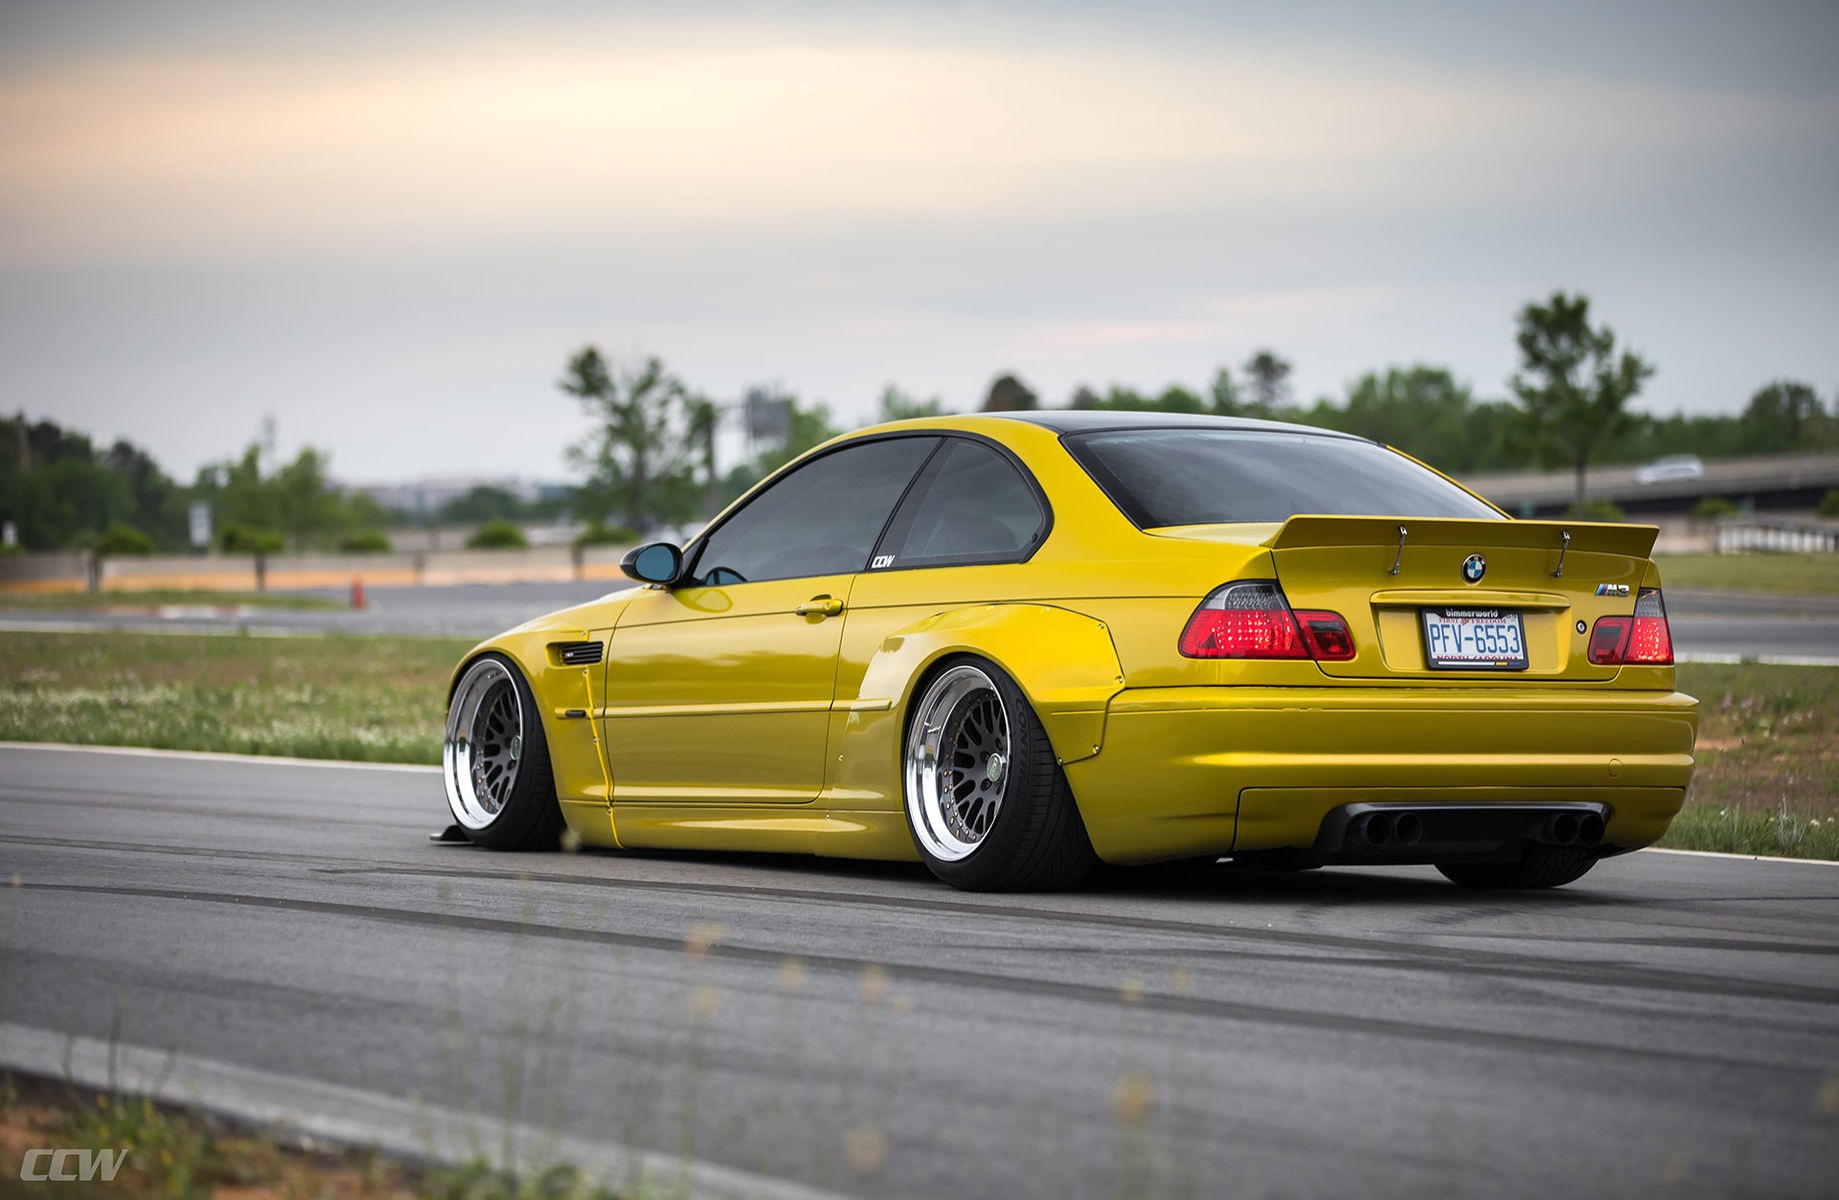 Phoenix Yellow Pandem Widebody E46 M3 Ccw Classic 3 Piece Wheels